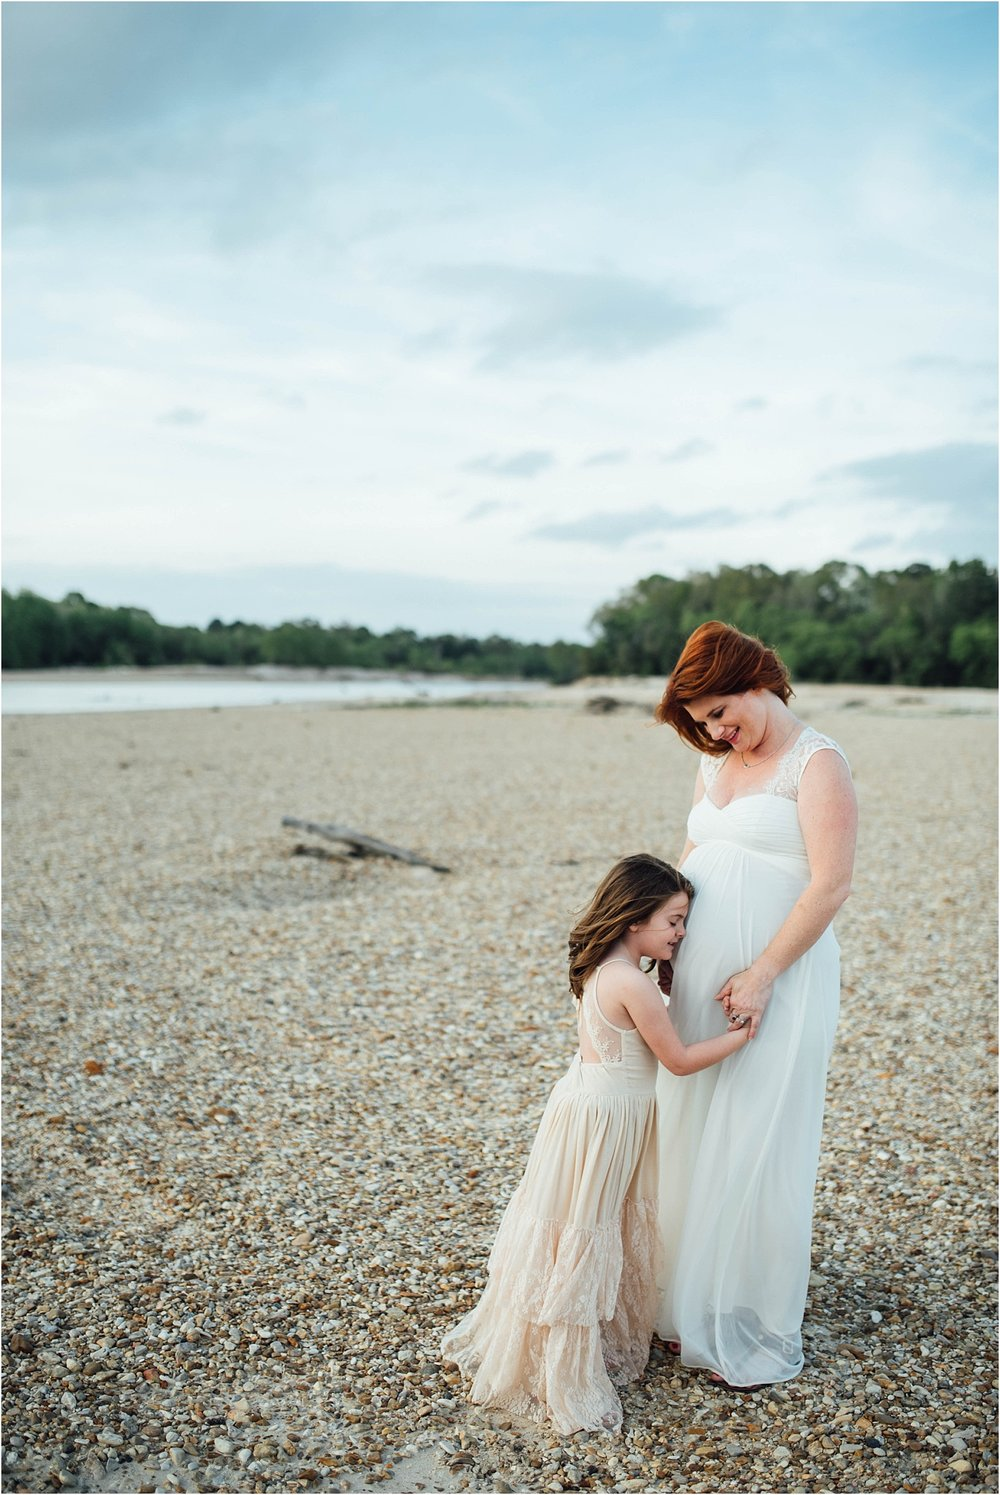 Sarah + Charlotte-Mommy-and-Me-Amite-River-Maternity-Photos_Gabby Chapin_Print_0058_BLOG.jpg